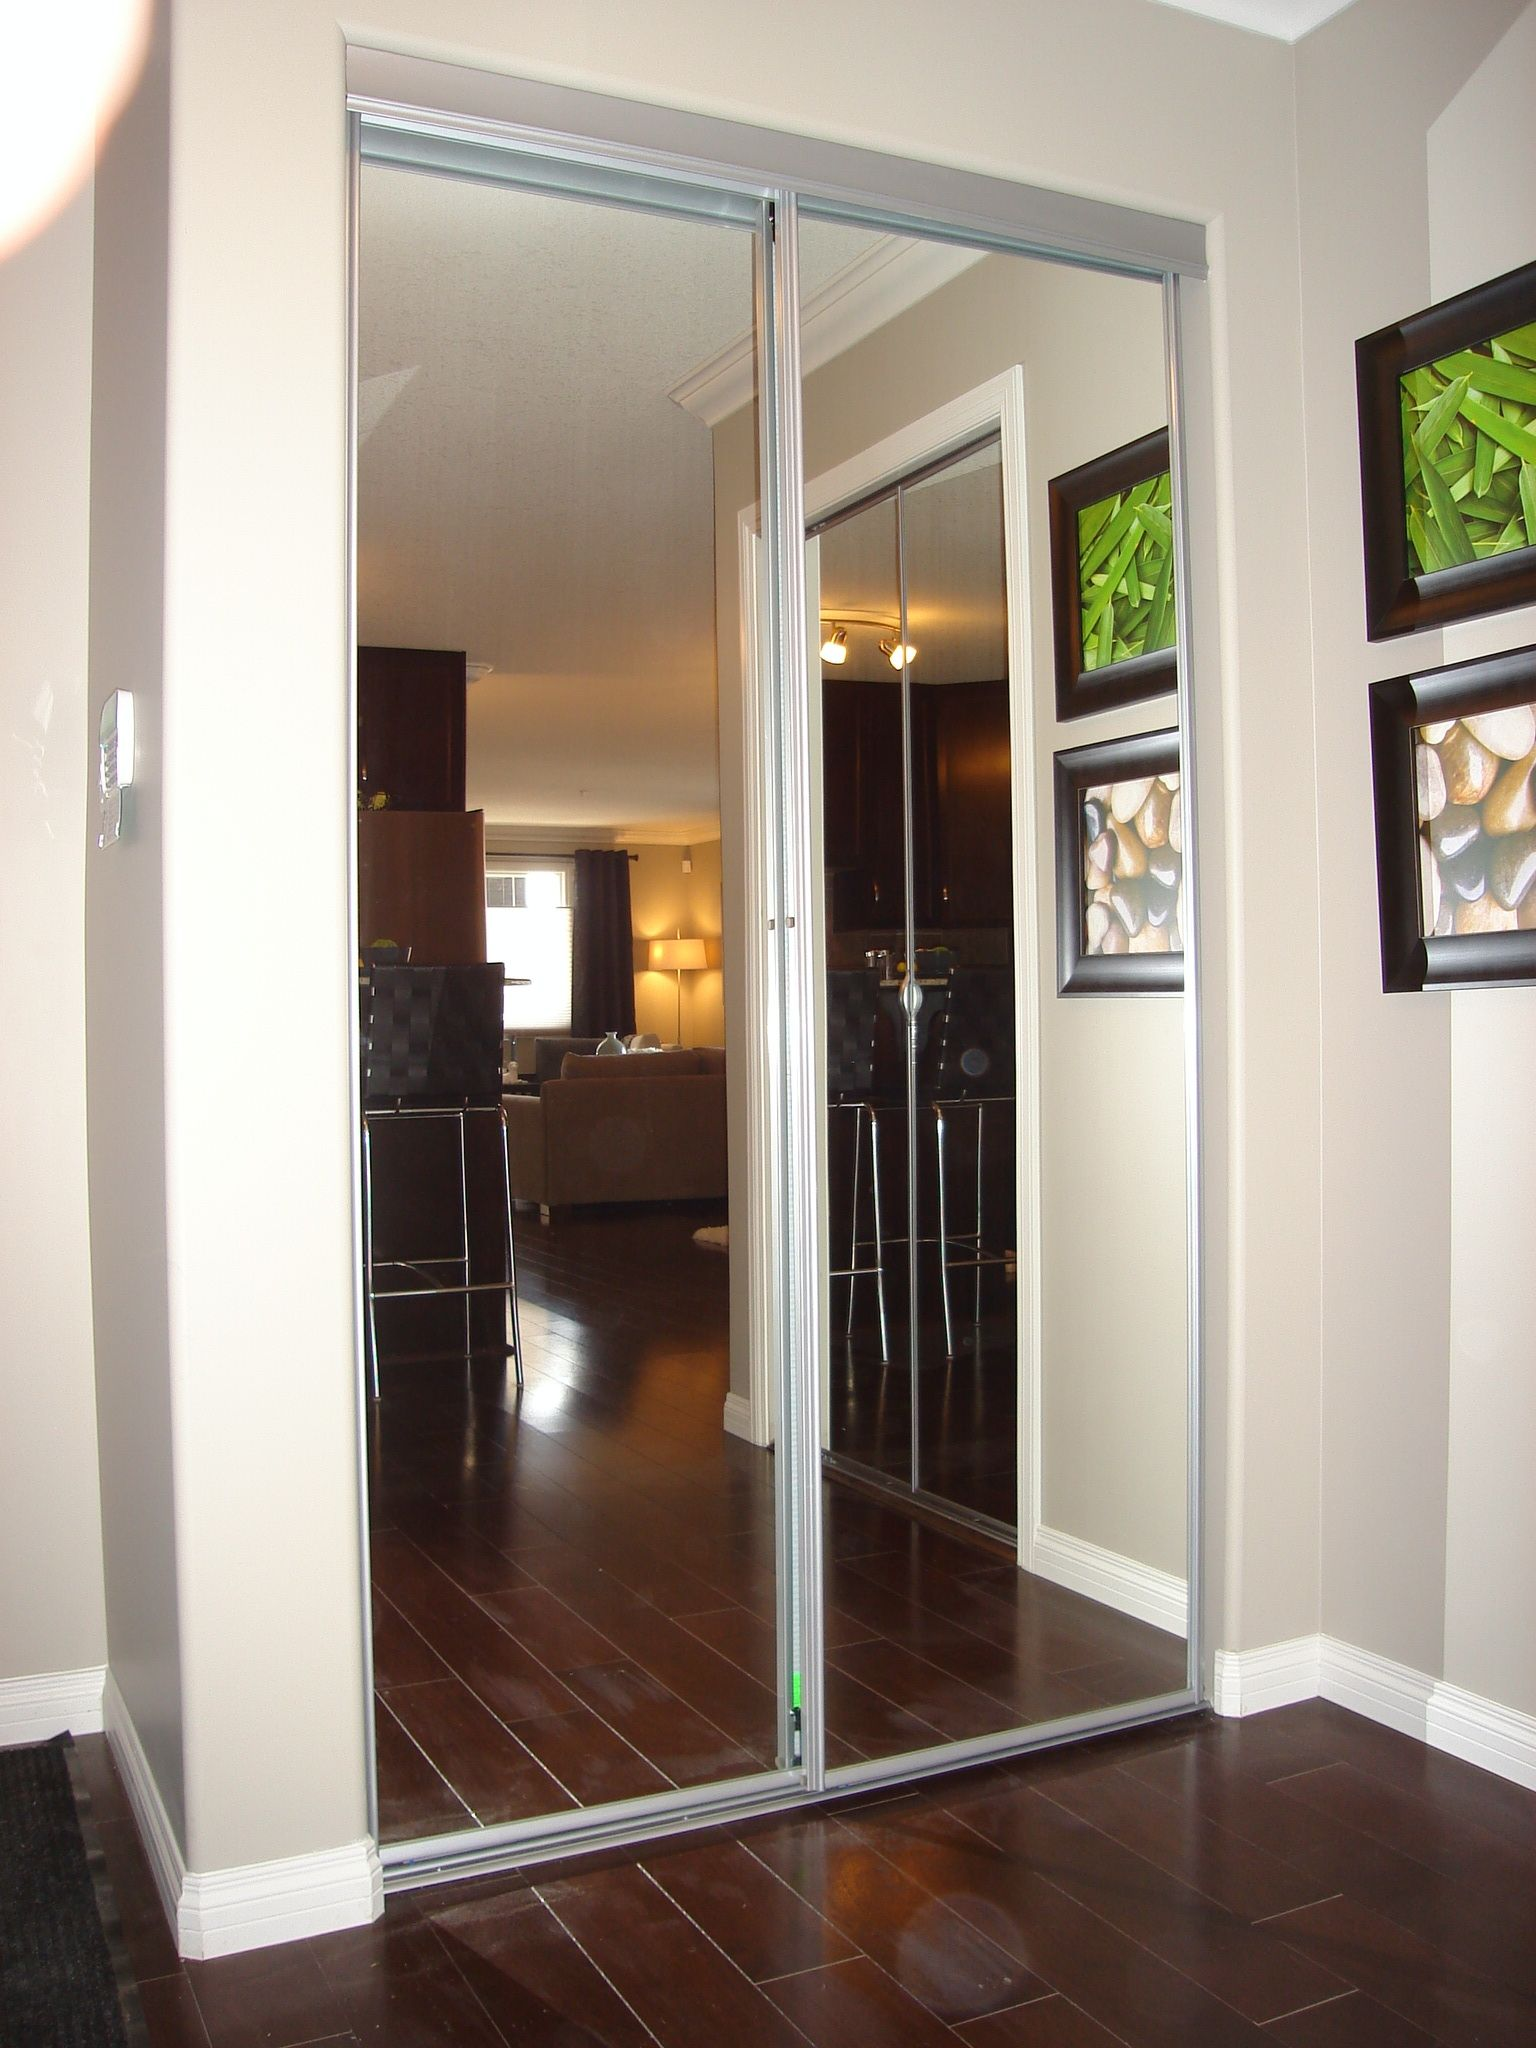 Stanley Mirrored Sliding Wardrobe Doors Sliding Mirror Closet Doors Mirror Closet Doors Sliding Closet Doors